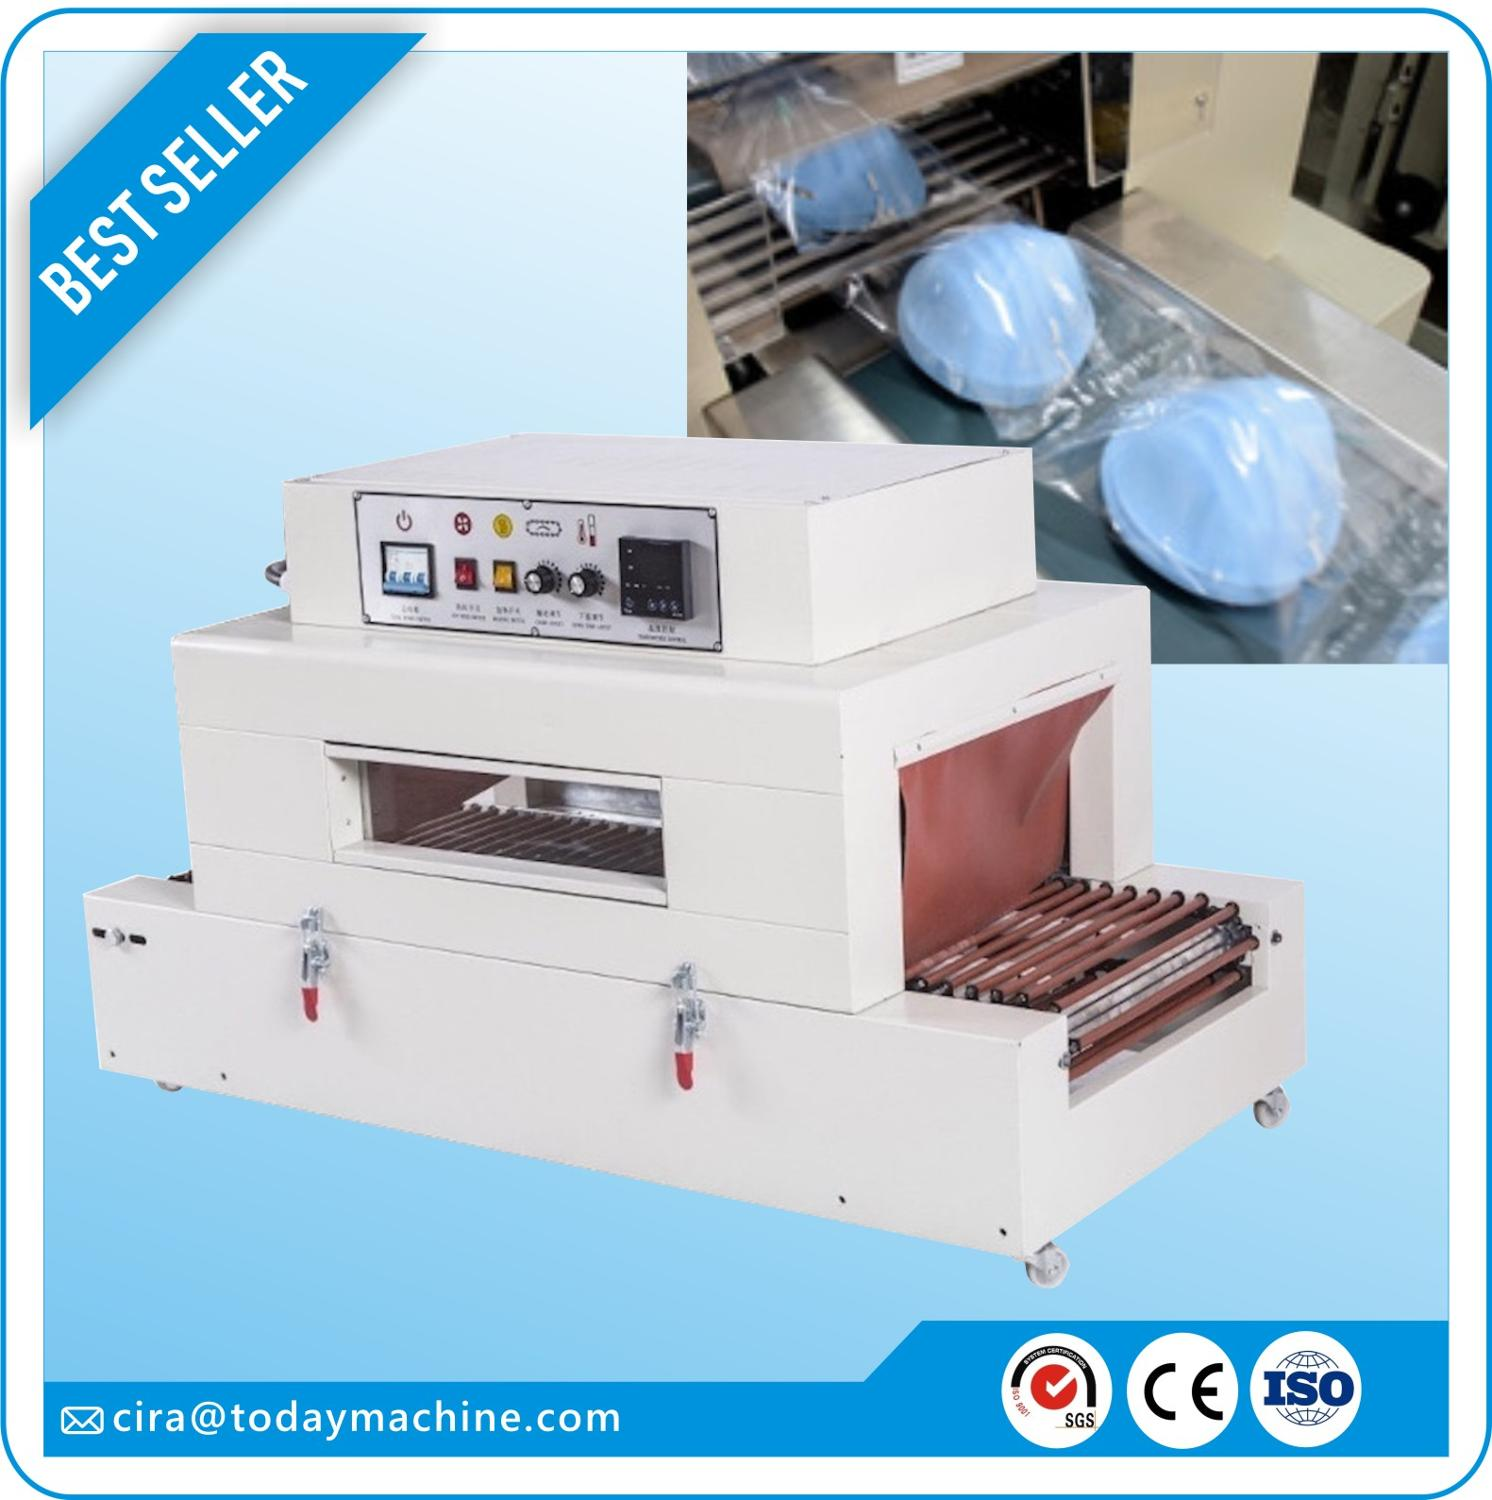 N95 Mask / Disposable Mask Sealing, Cutting And Shrinking Machine